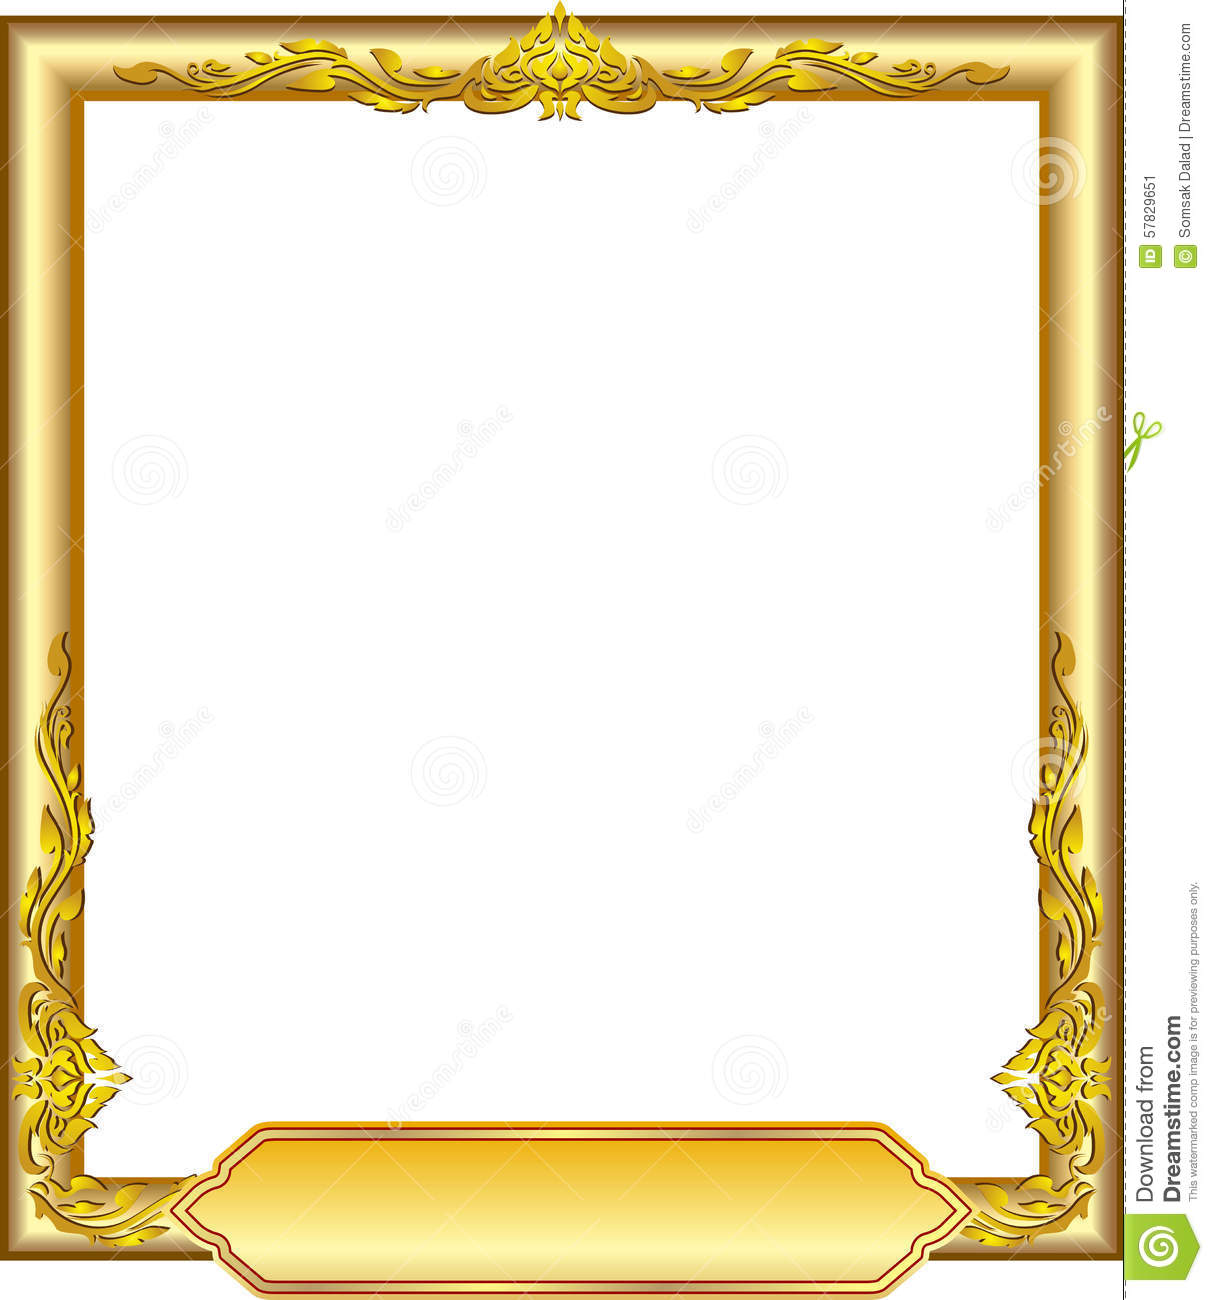 Gold frame floral stock vector. Image of element ...